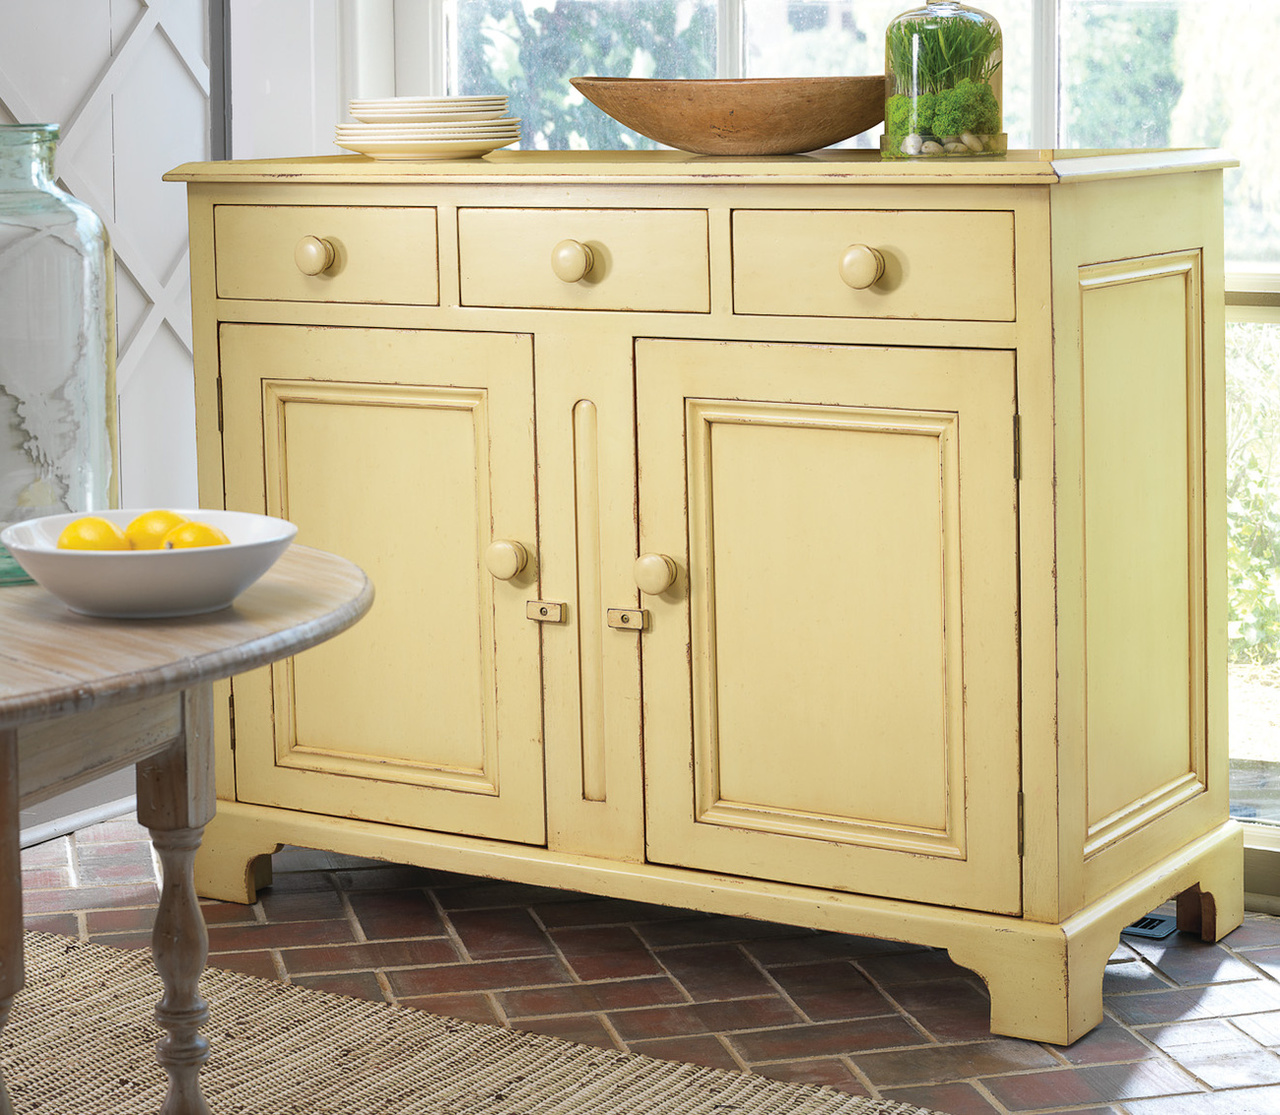 Somerset Bay Pawley 39 S Island Cupboard Apricot Tart Cupboard Without Rack